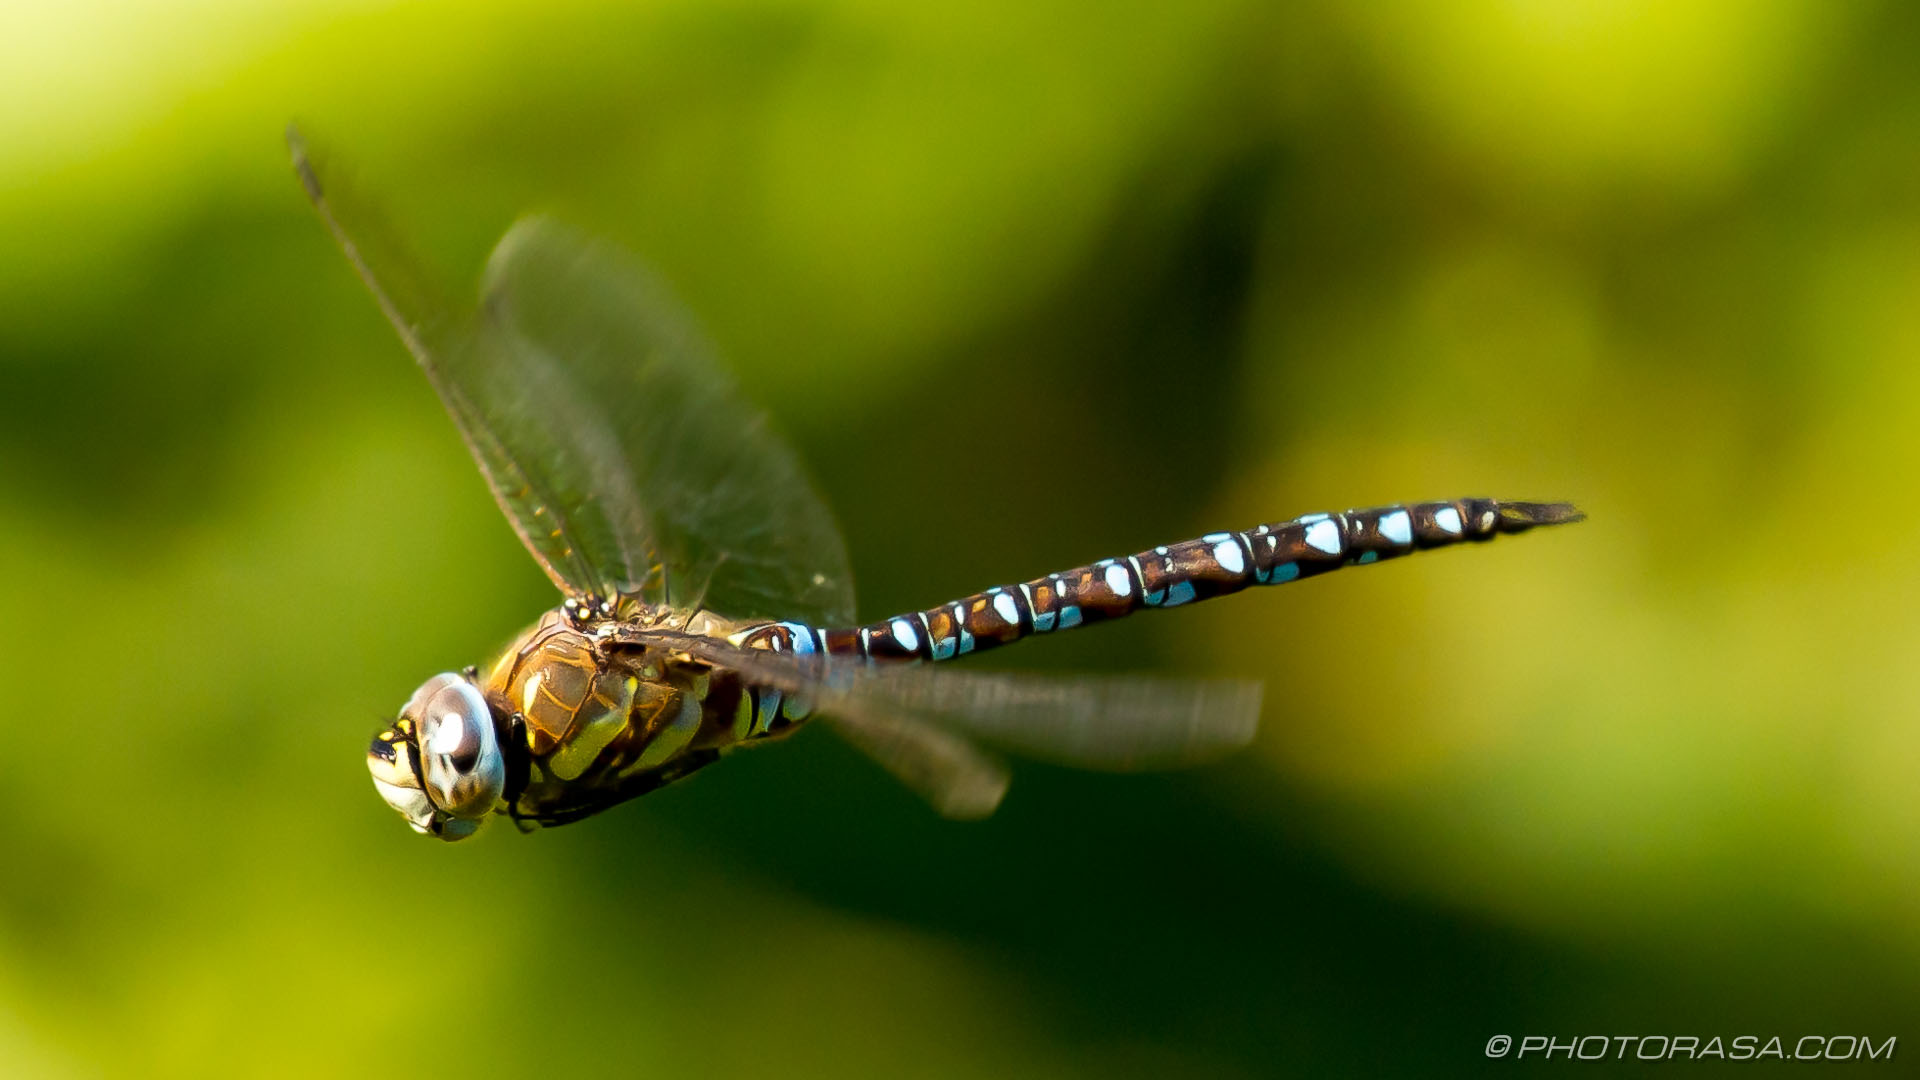 http://photorasa.com/dragonflies/male-migrant-hawker-dragonfly-hovering-straight-winged/